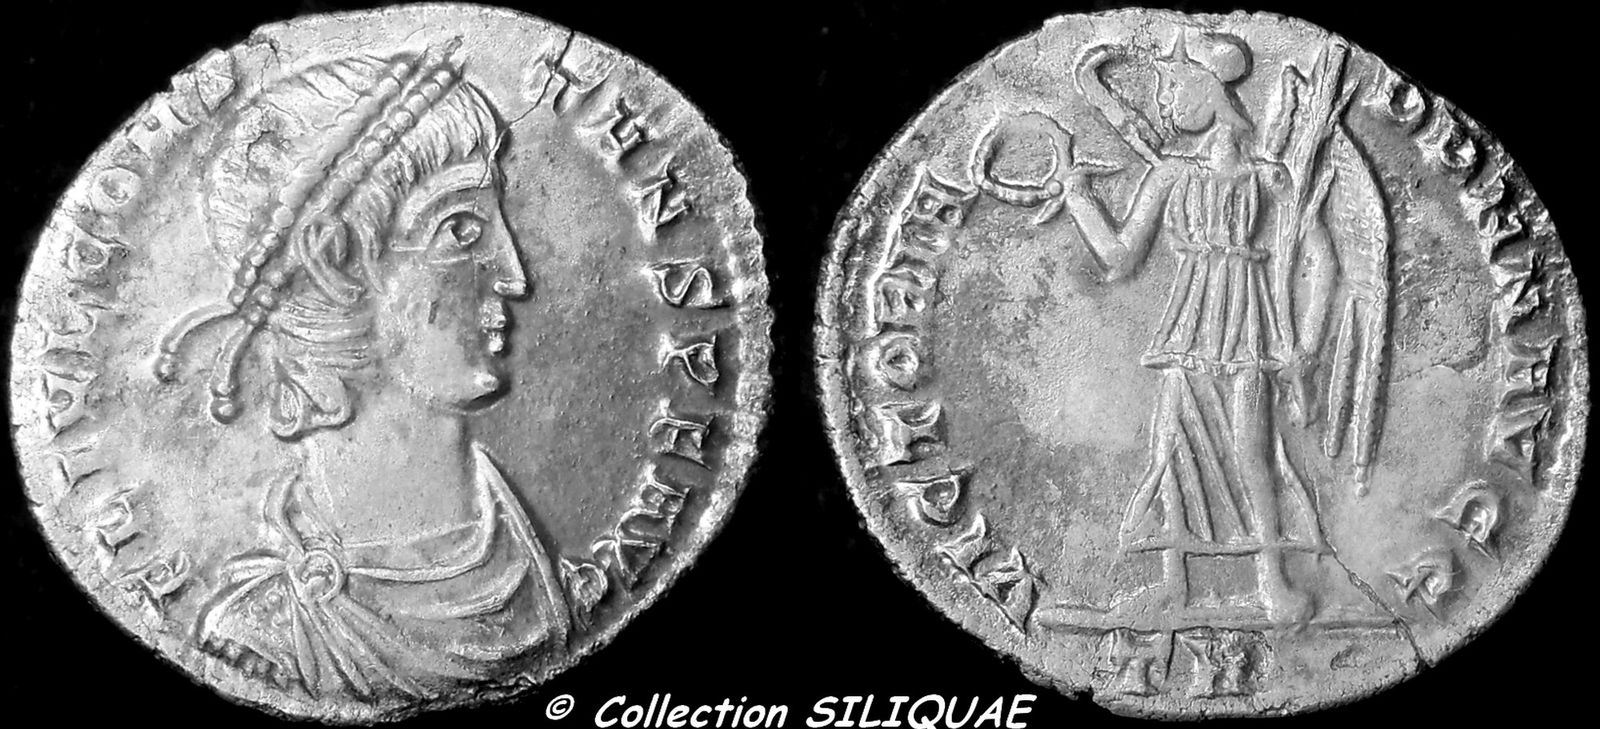 Collection Siliquae - Page 2 CONSTANS-RIC176